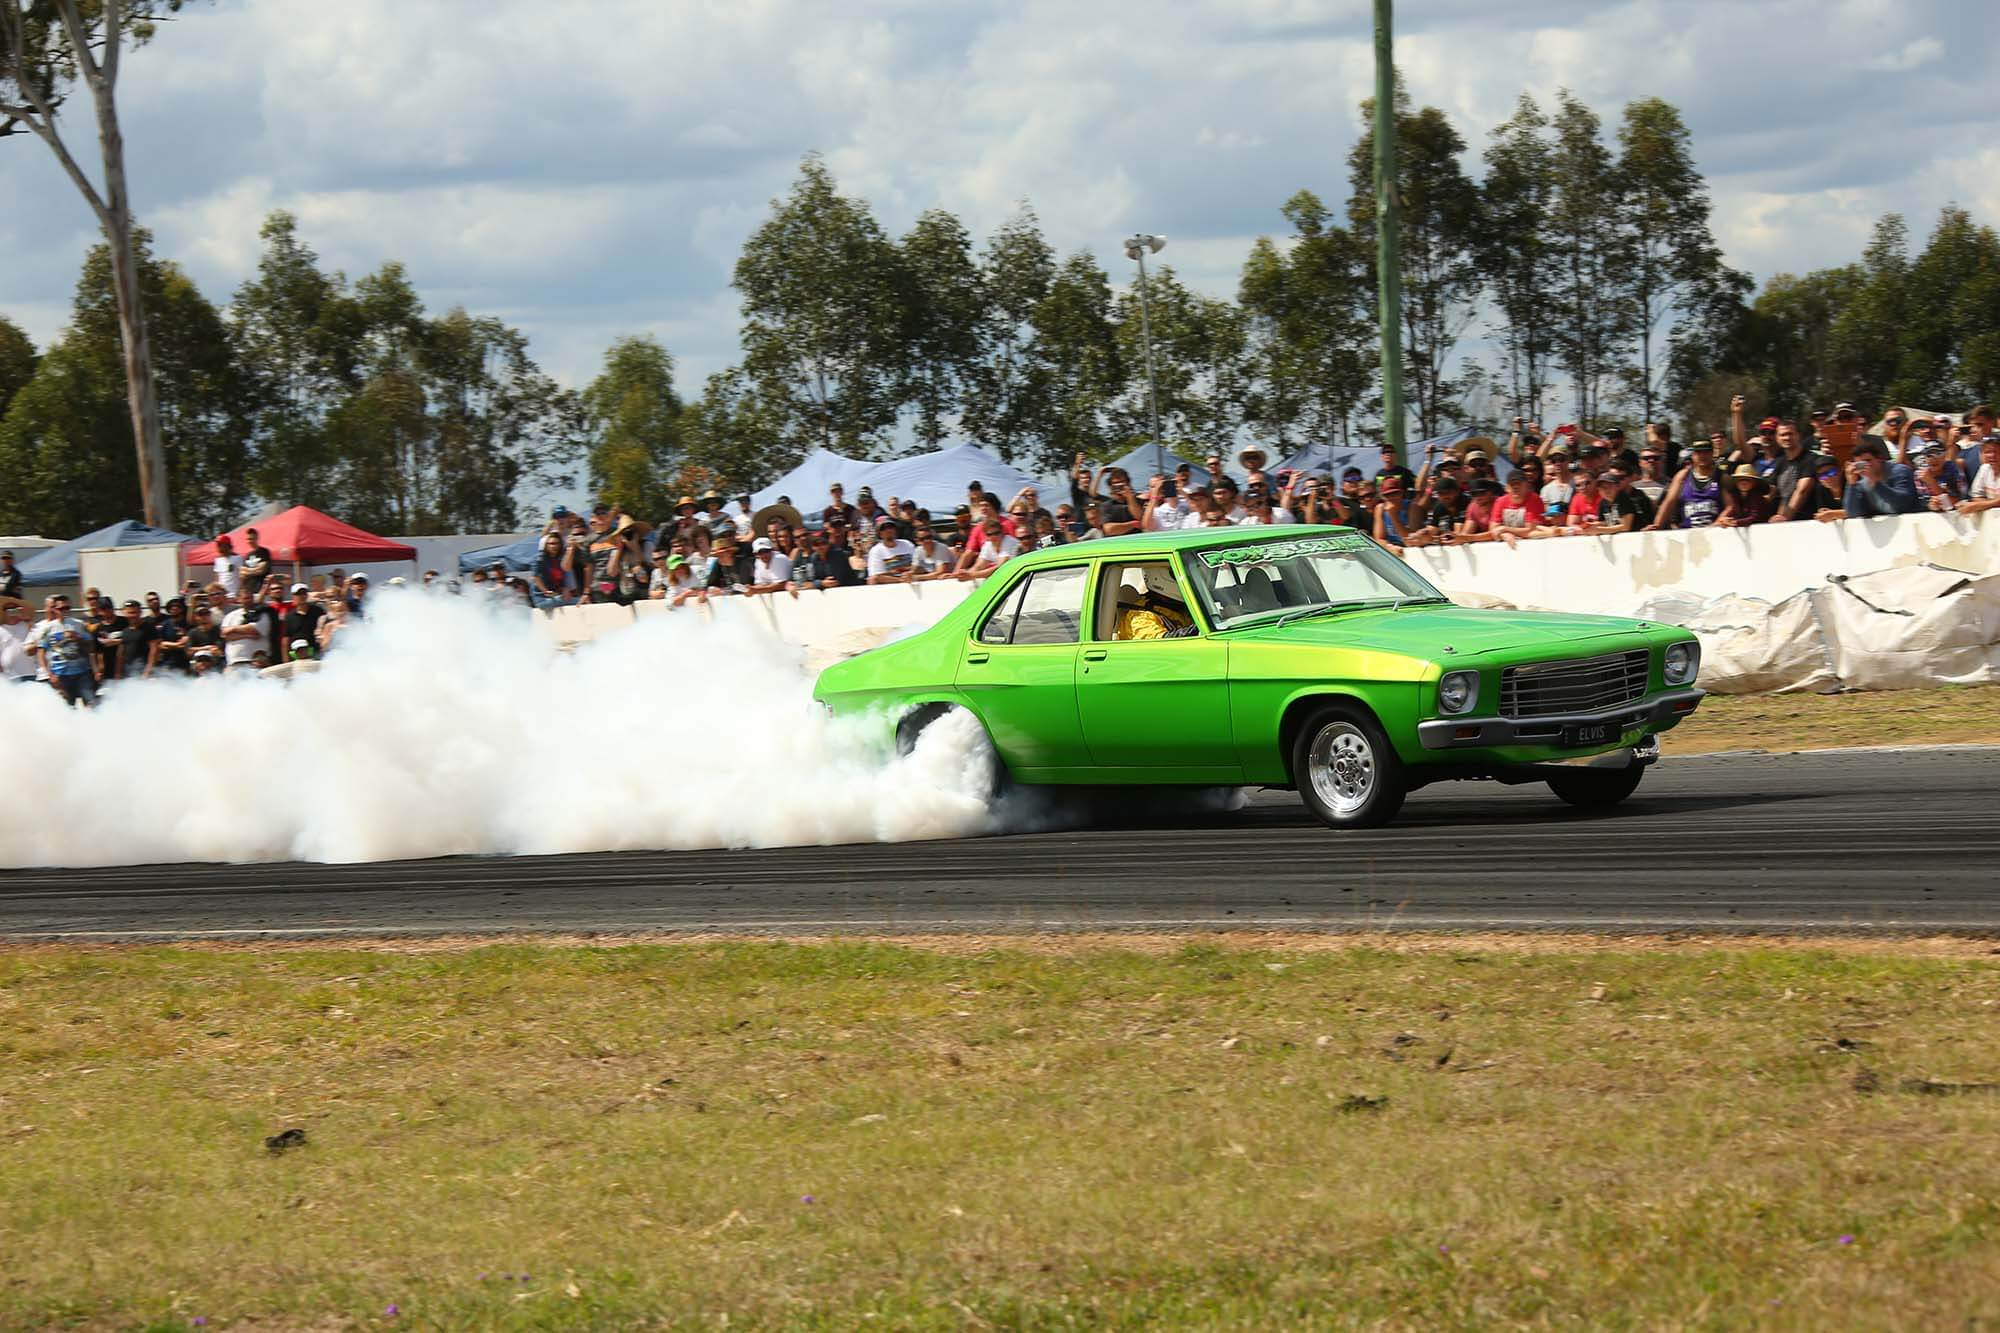 Powercruise #81 ROCKS The Bend Motorsport Park! Here's the handy info you need